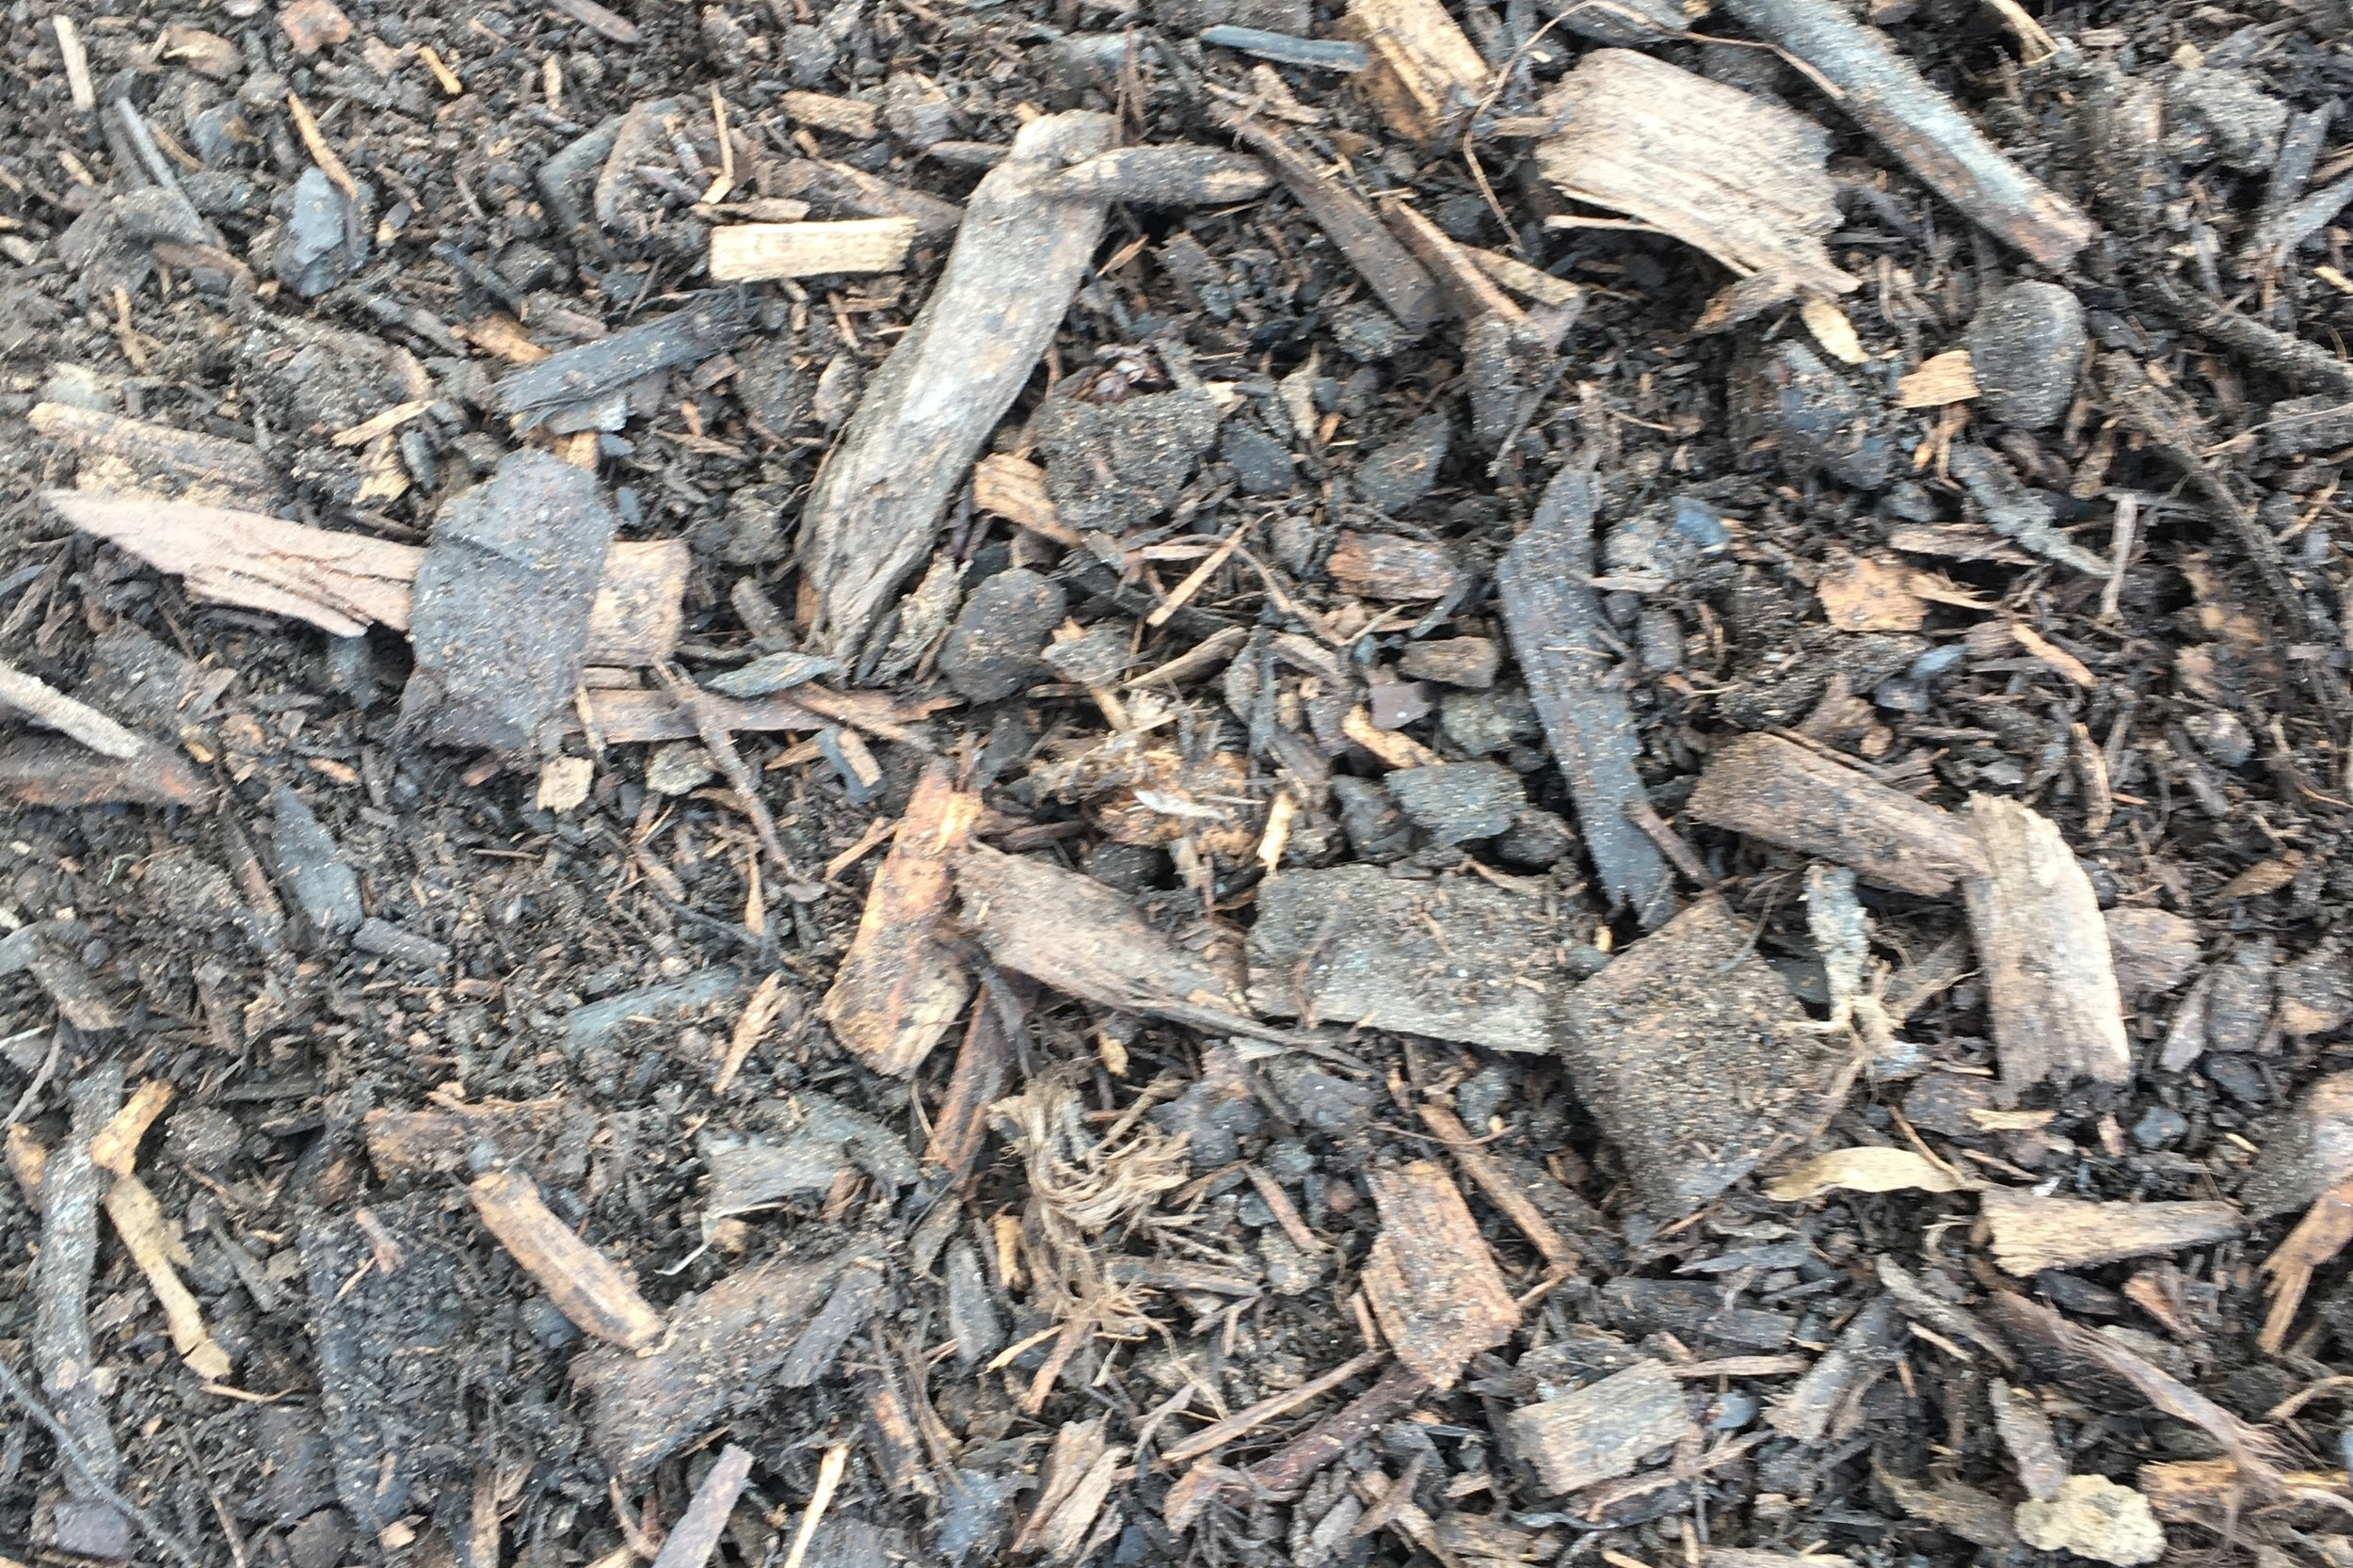 Water Saver Mulch - 80/20 mix of 20mm pine bark and fines. Approximately 20% fines containing pine bark and coco peat. Excellent for water retention and for the prevention of weed growth.